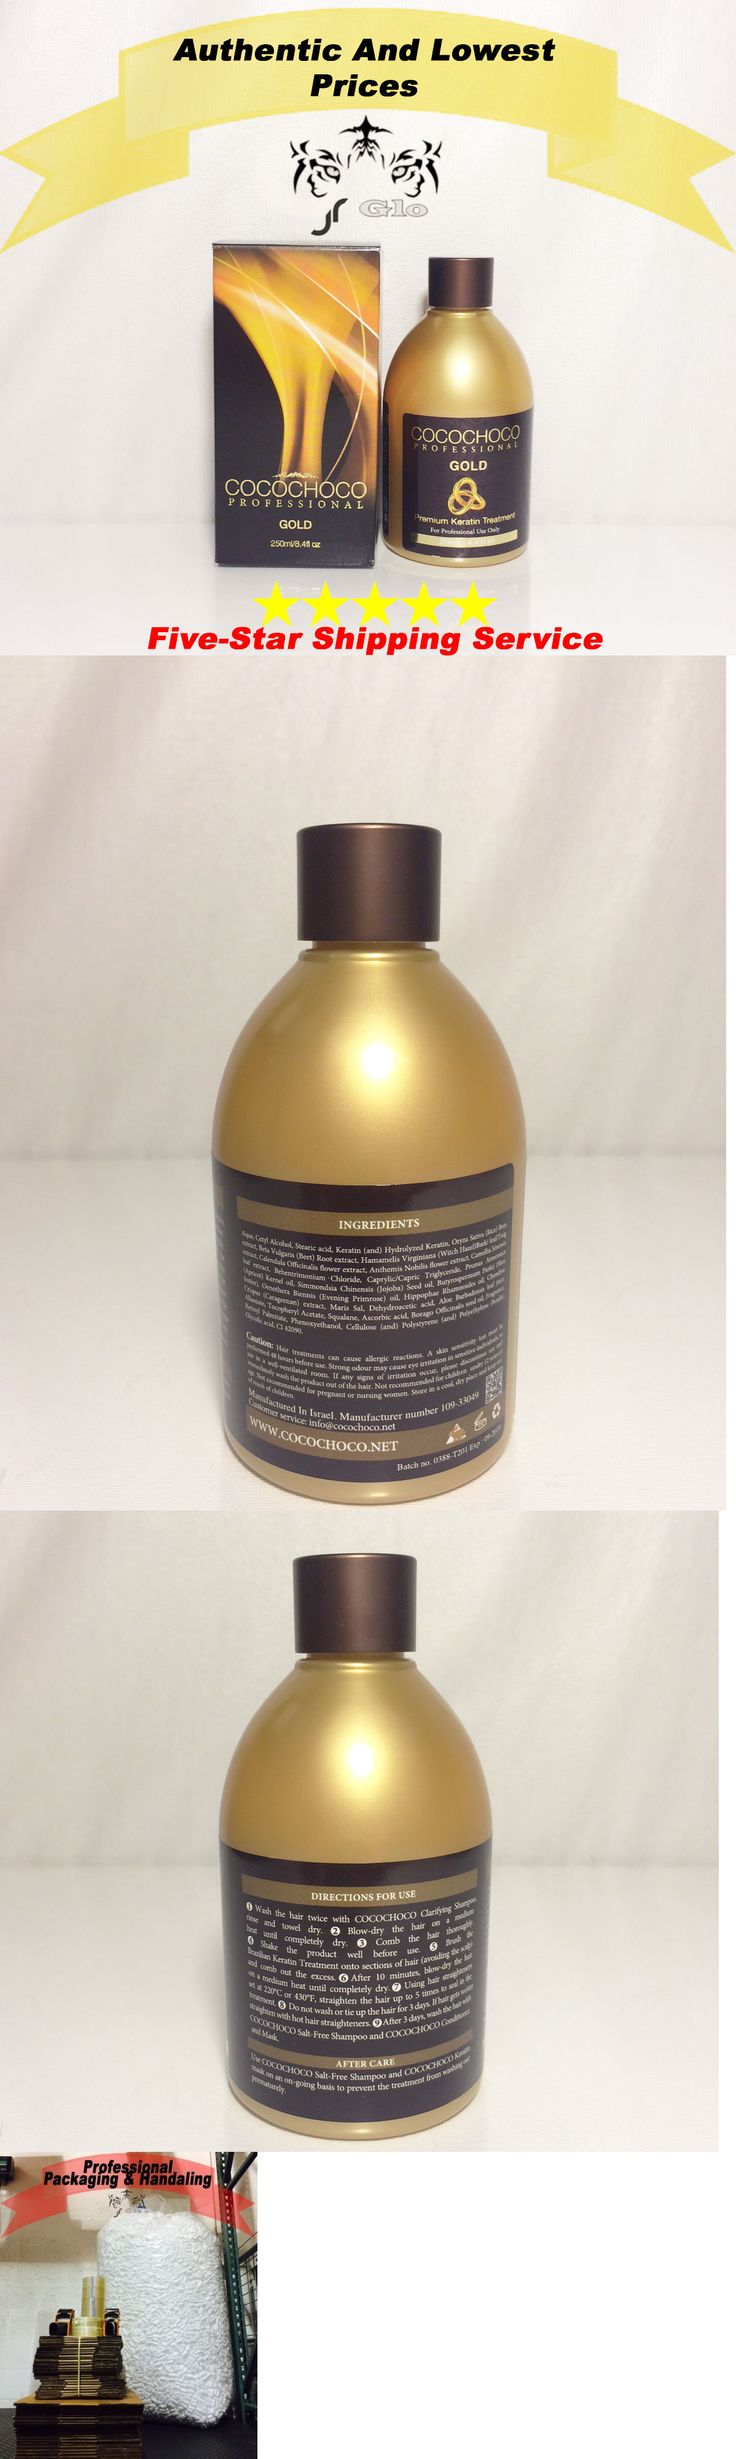 Relaxers and Straightening Prod: Cocochoco Brazilian Blow Dry New Line Gold Premium Keratin 8.4 Oz / 250 Ml BUY IT NOW ONLY: $36.0